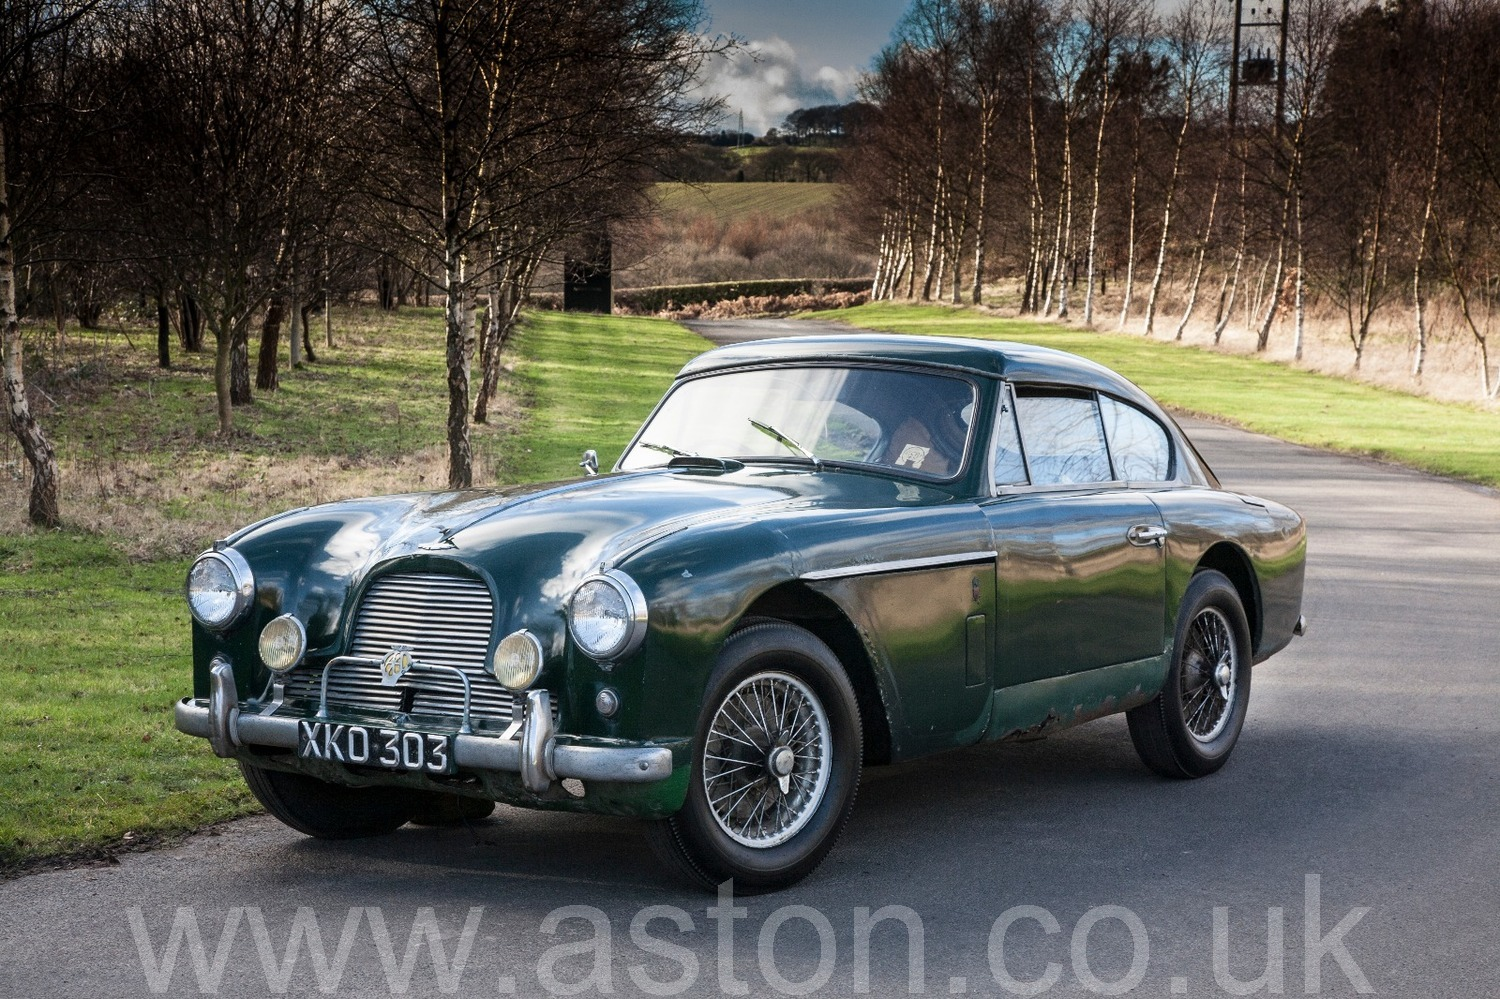 DB MKII Project Car For Sale From The Aston Workshop - Aston martin restoration project for sale